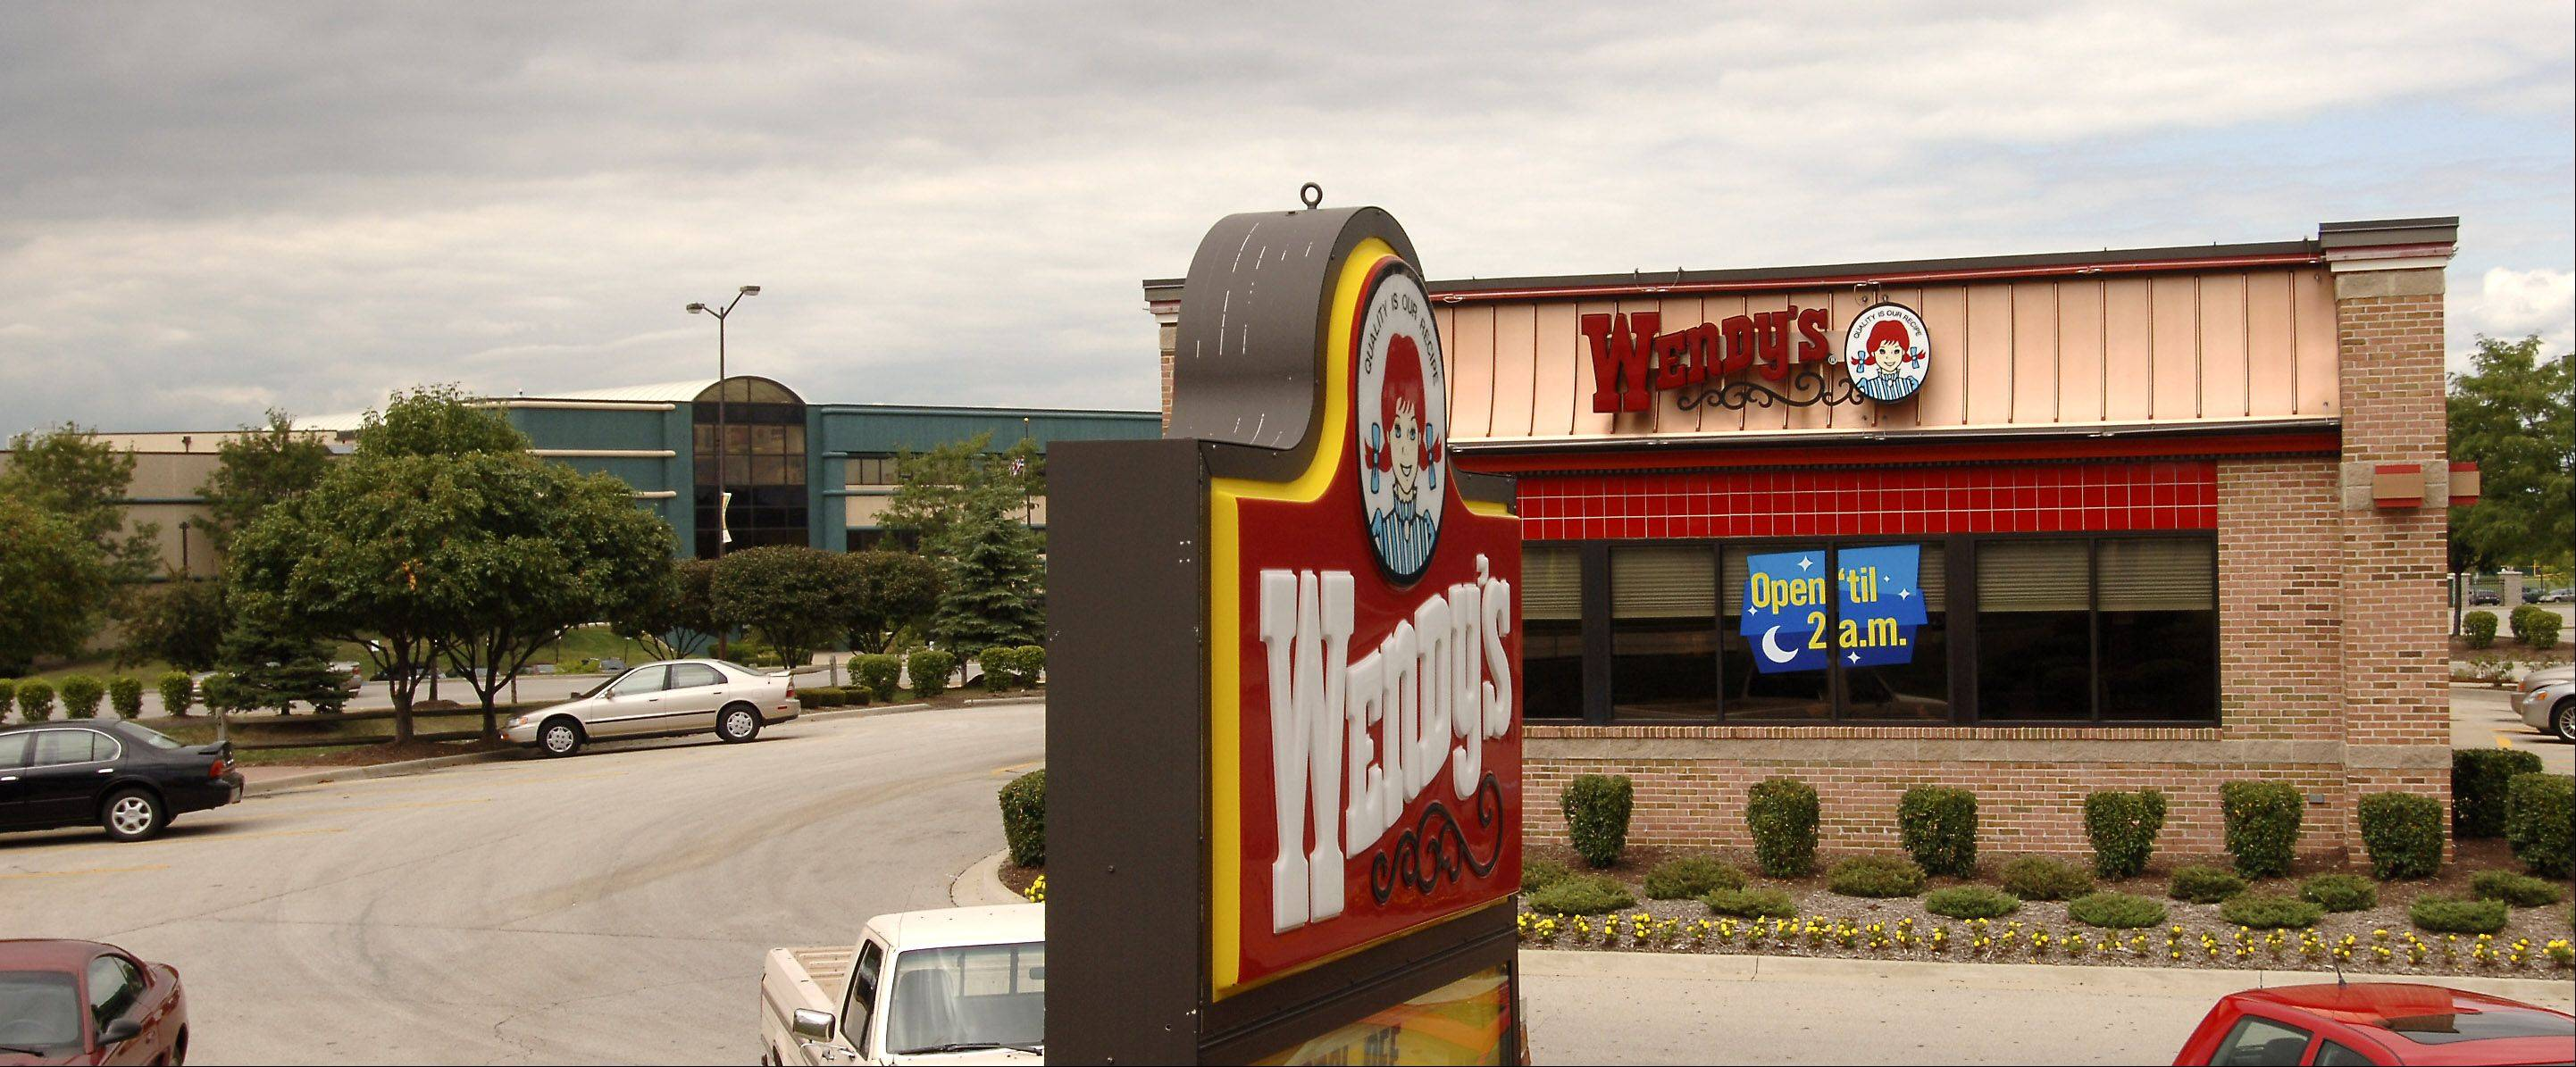 Wendy's says its third-quarter loss narrowed as more customers snapped up offerings at its restaurants including its new Pretzel Bacon Cheeseburger.